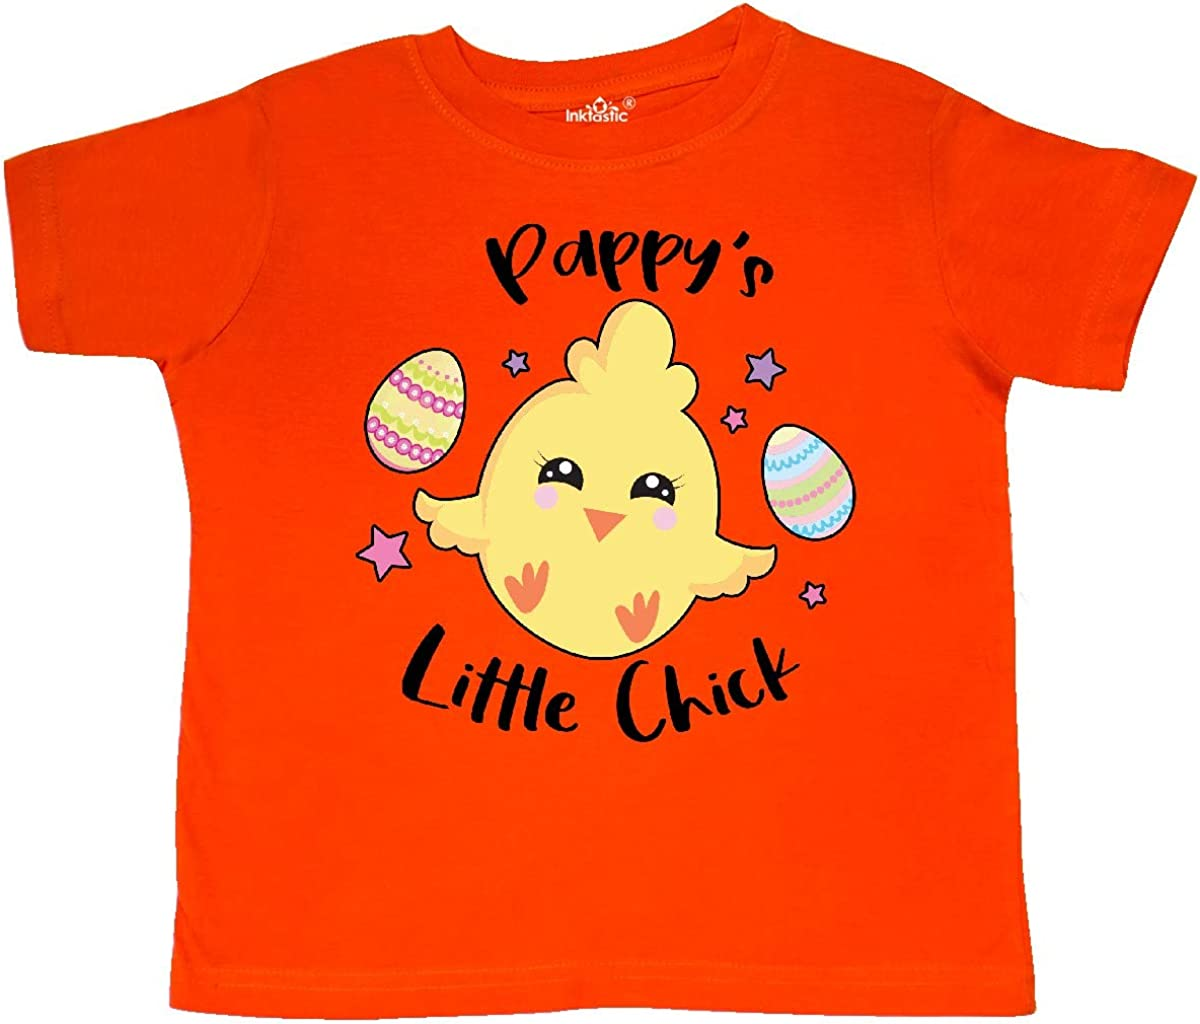 inktastic Happy Easter Pappys Little Chick Toddler T-Shirt